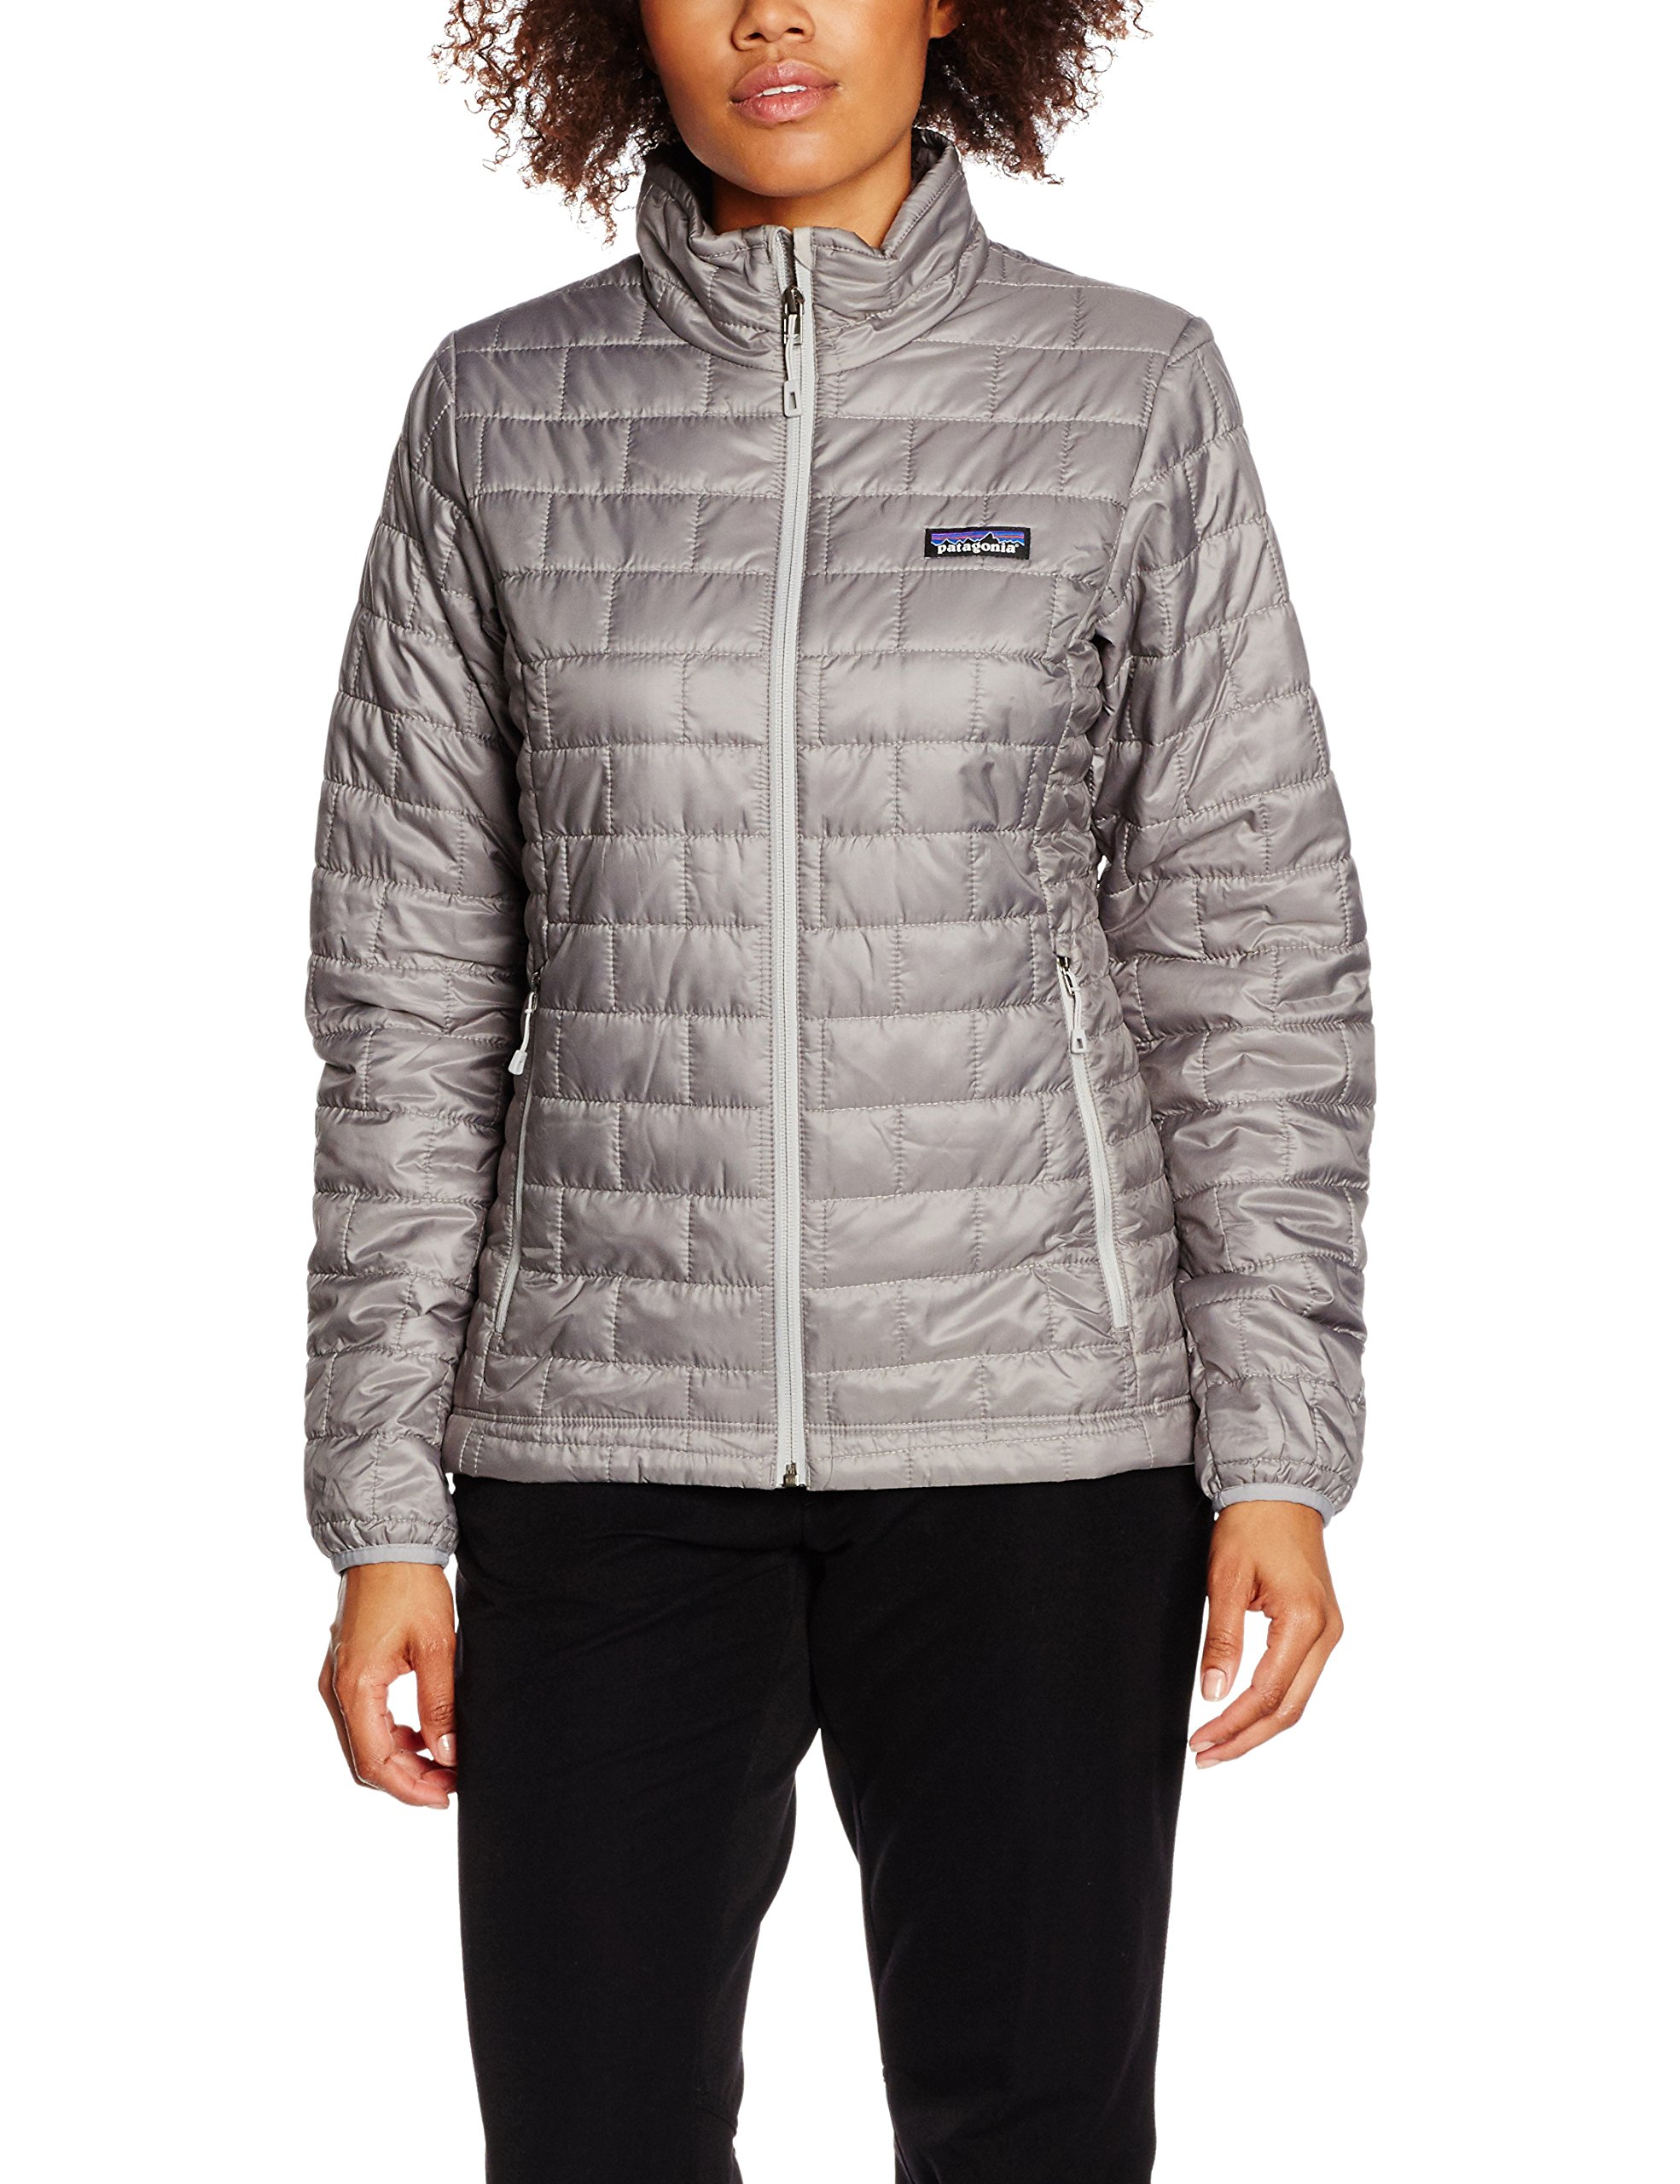 Patagonia Womens Nano Puff JKT, Feather Grey, L